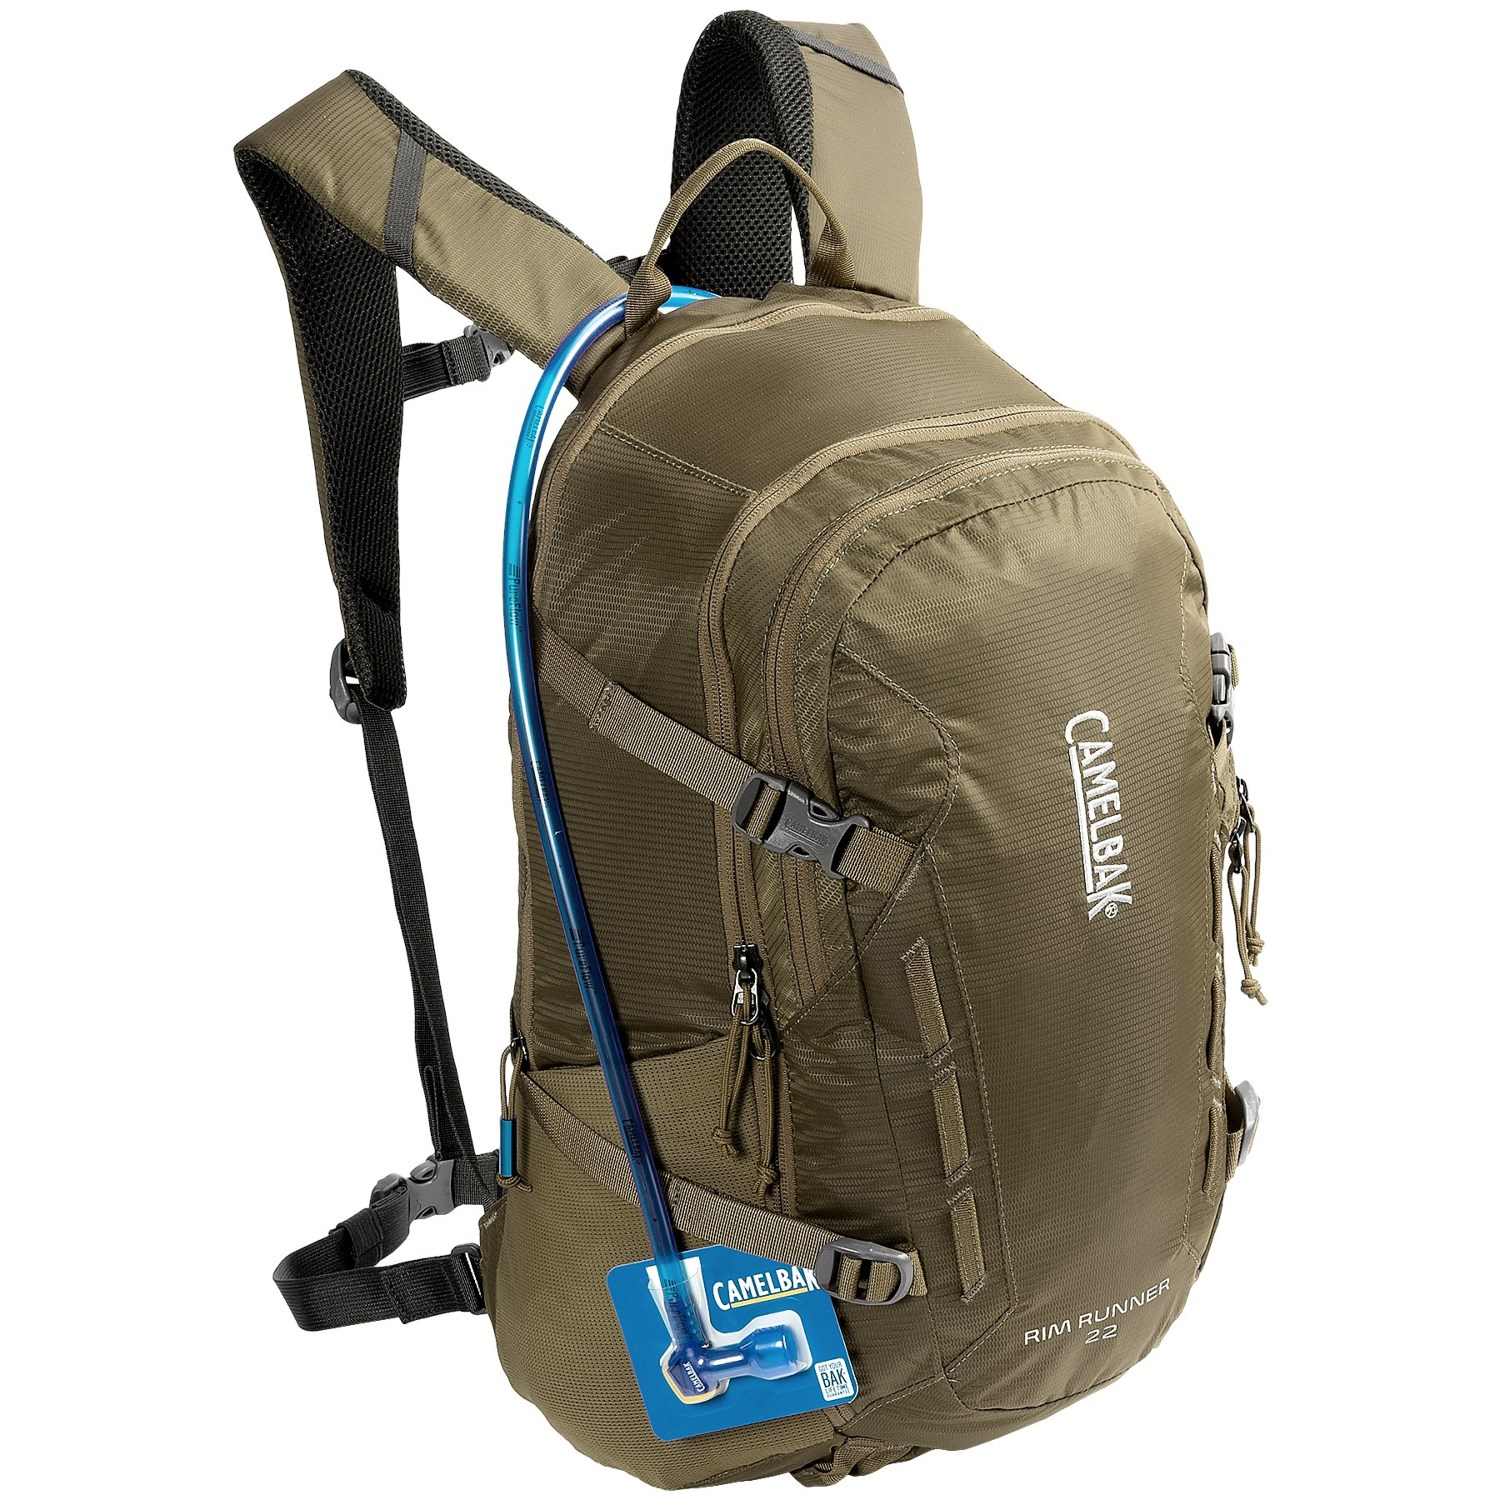 Where To Buy Outdoor Cushions Perth picture on camelbak rim runner 22 hydration pack 100 floz~p~110gt with Where To Buy Outdoor Cushions Perth, sofa aa42f8b26e820e2f64bb81aaeebd326d